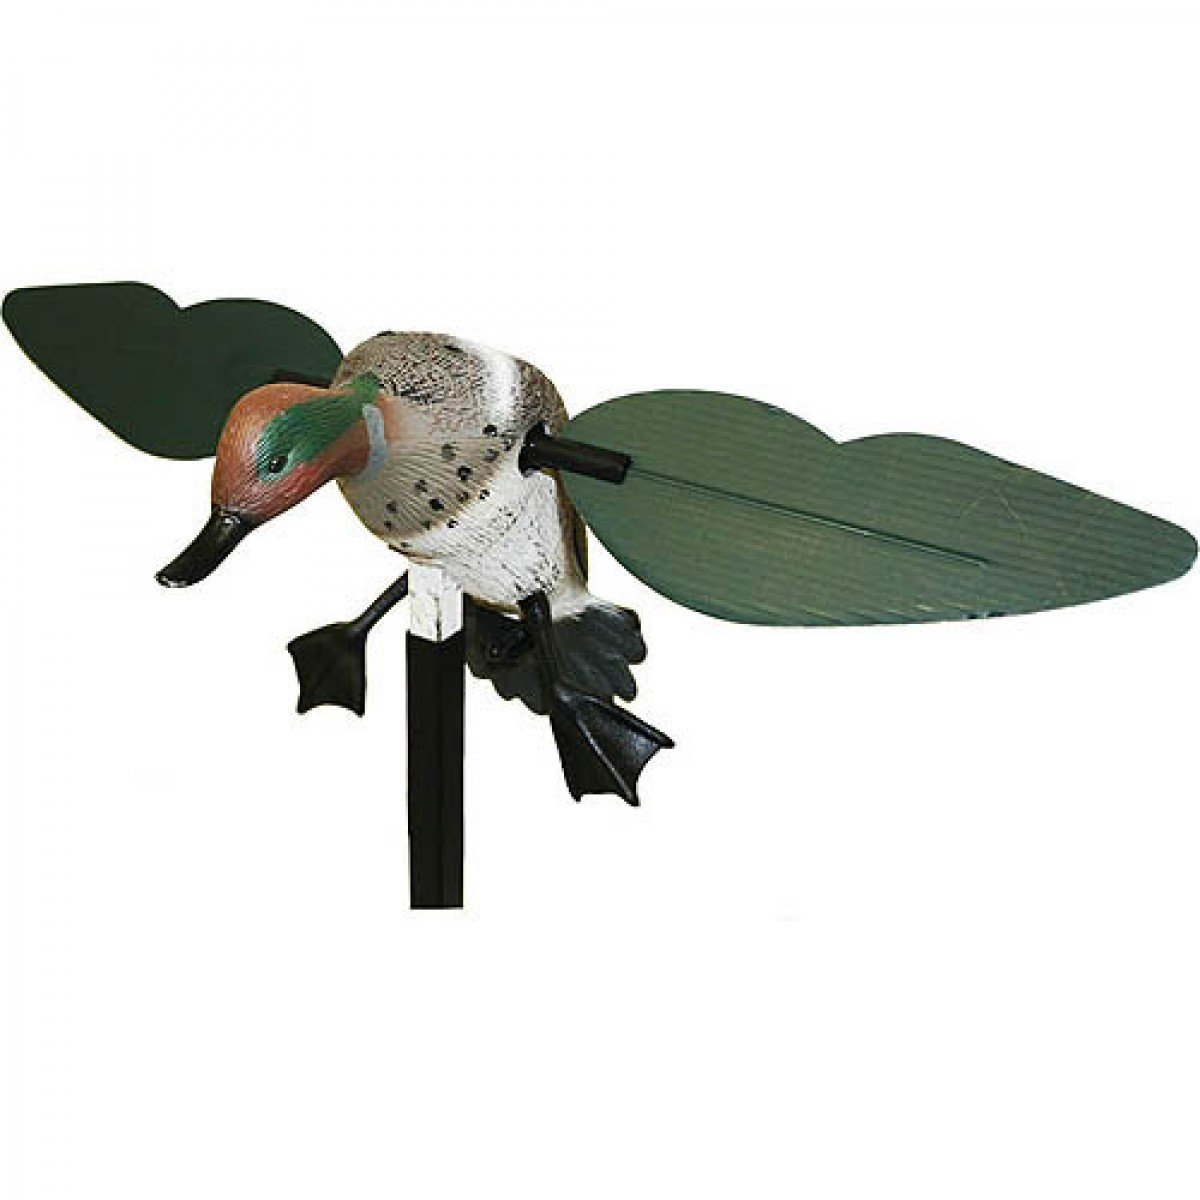 MOJO Outdoors Green Wing Teal Motion Duck Decoy by MOJO Outdoors (Image #3)